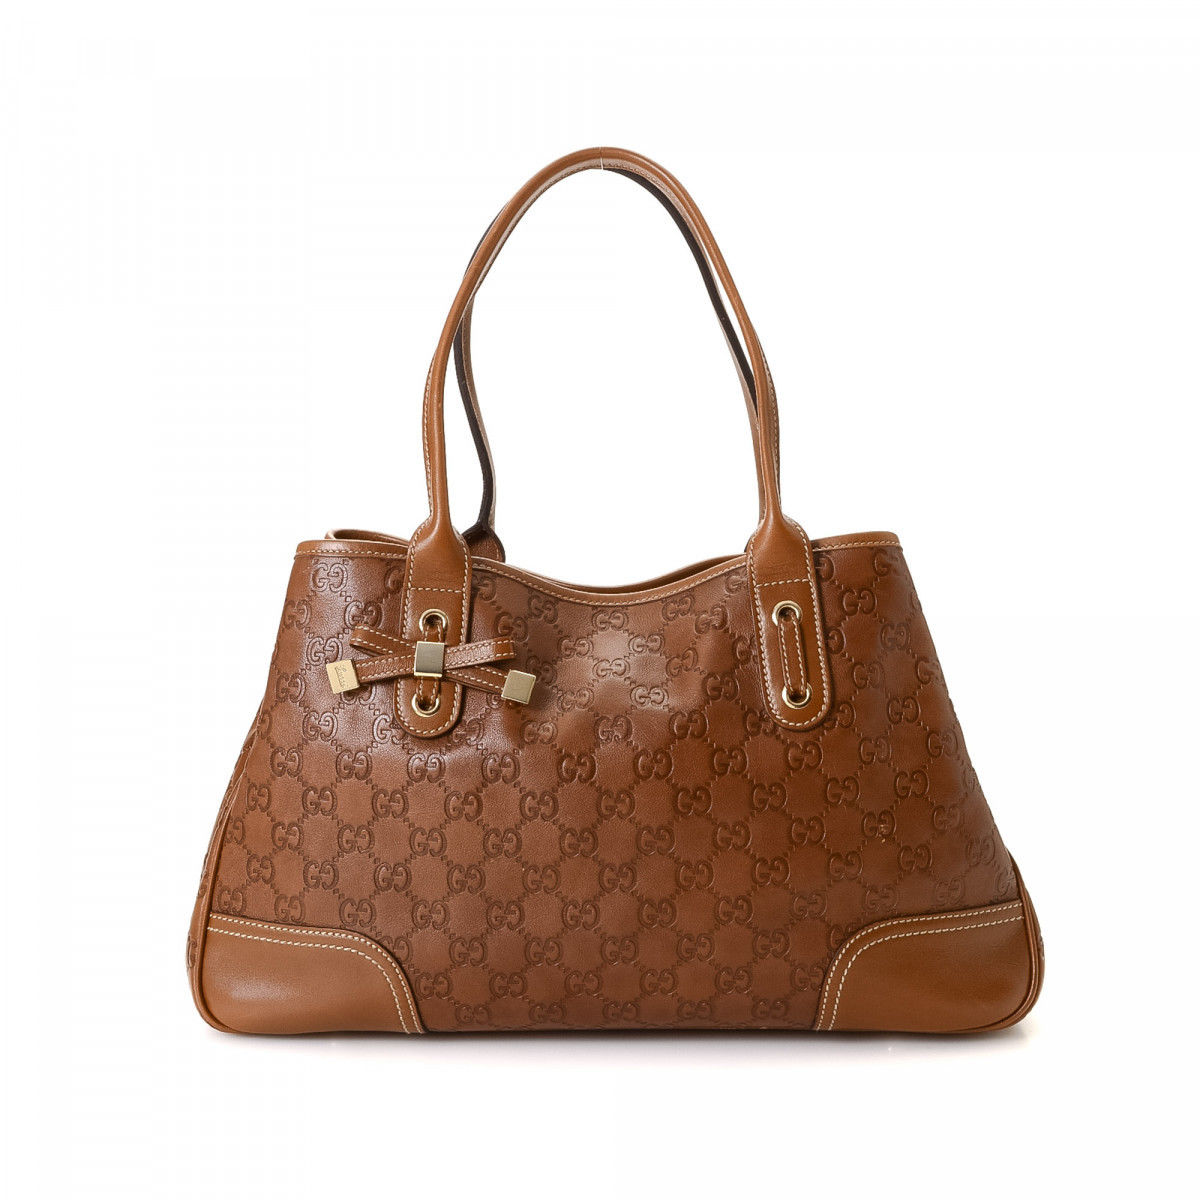 763d049d5 Gucci Guccissima Princy Shoulder Bag Guccissima Leather - LXRandCo ...